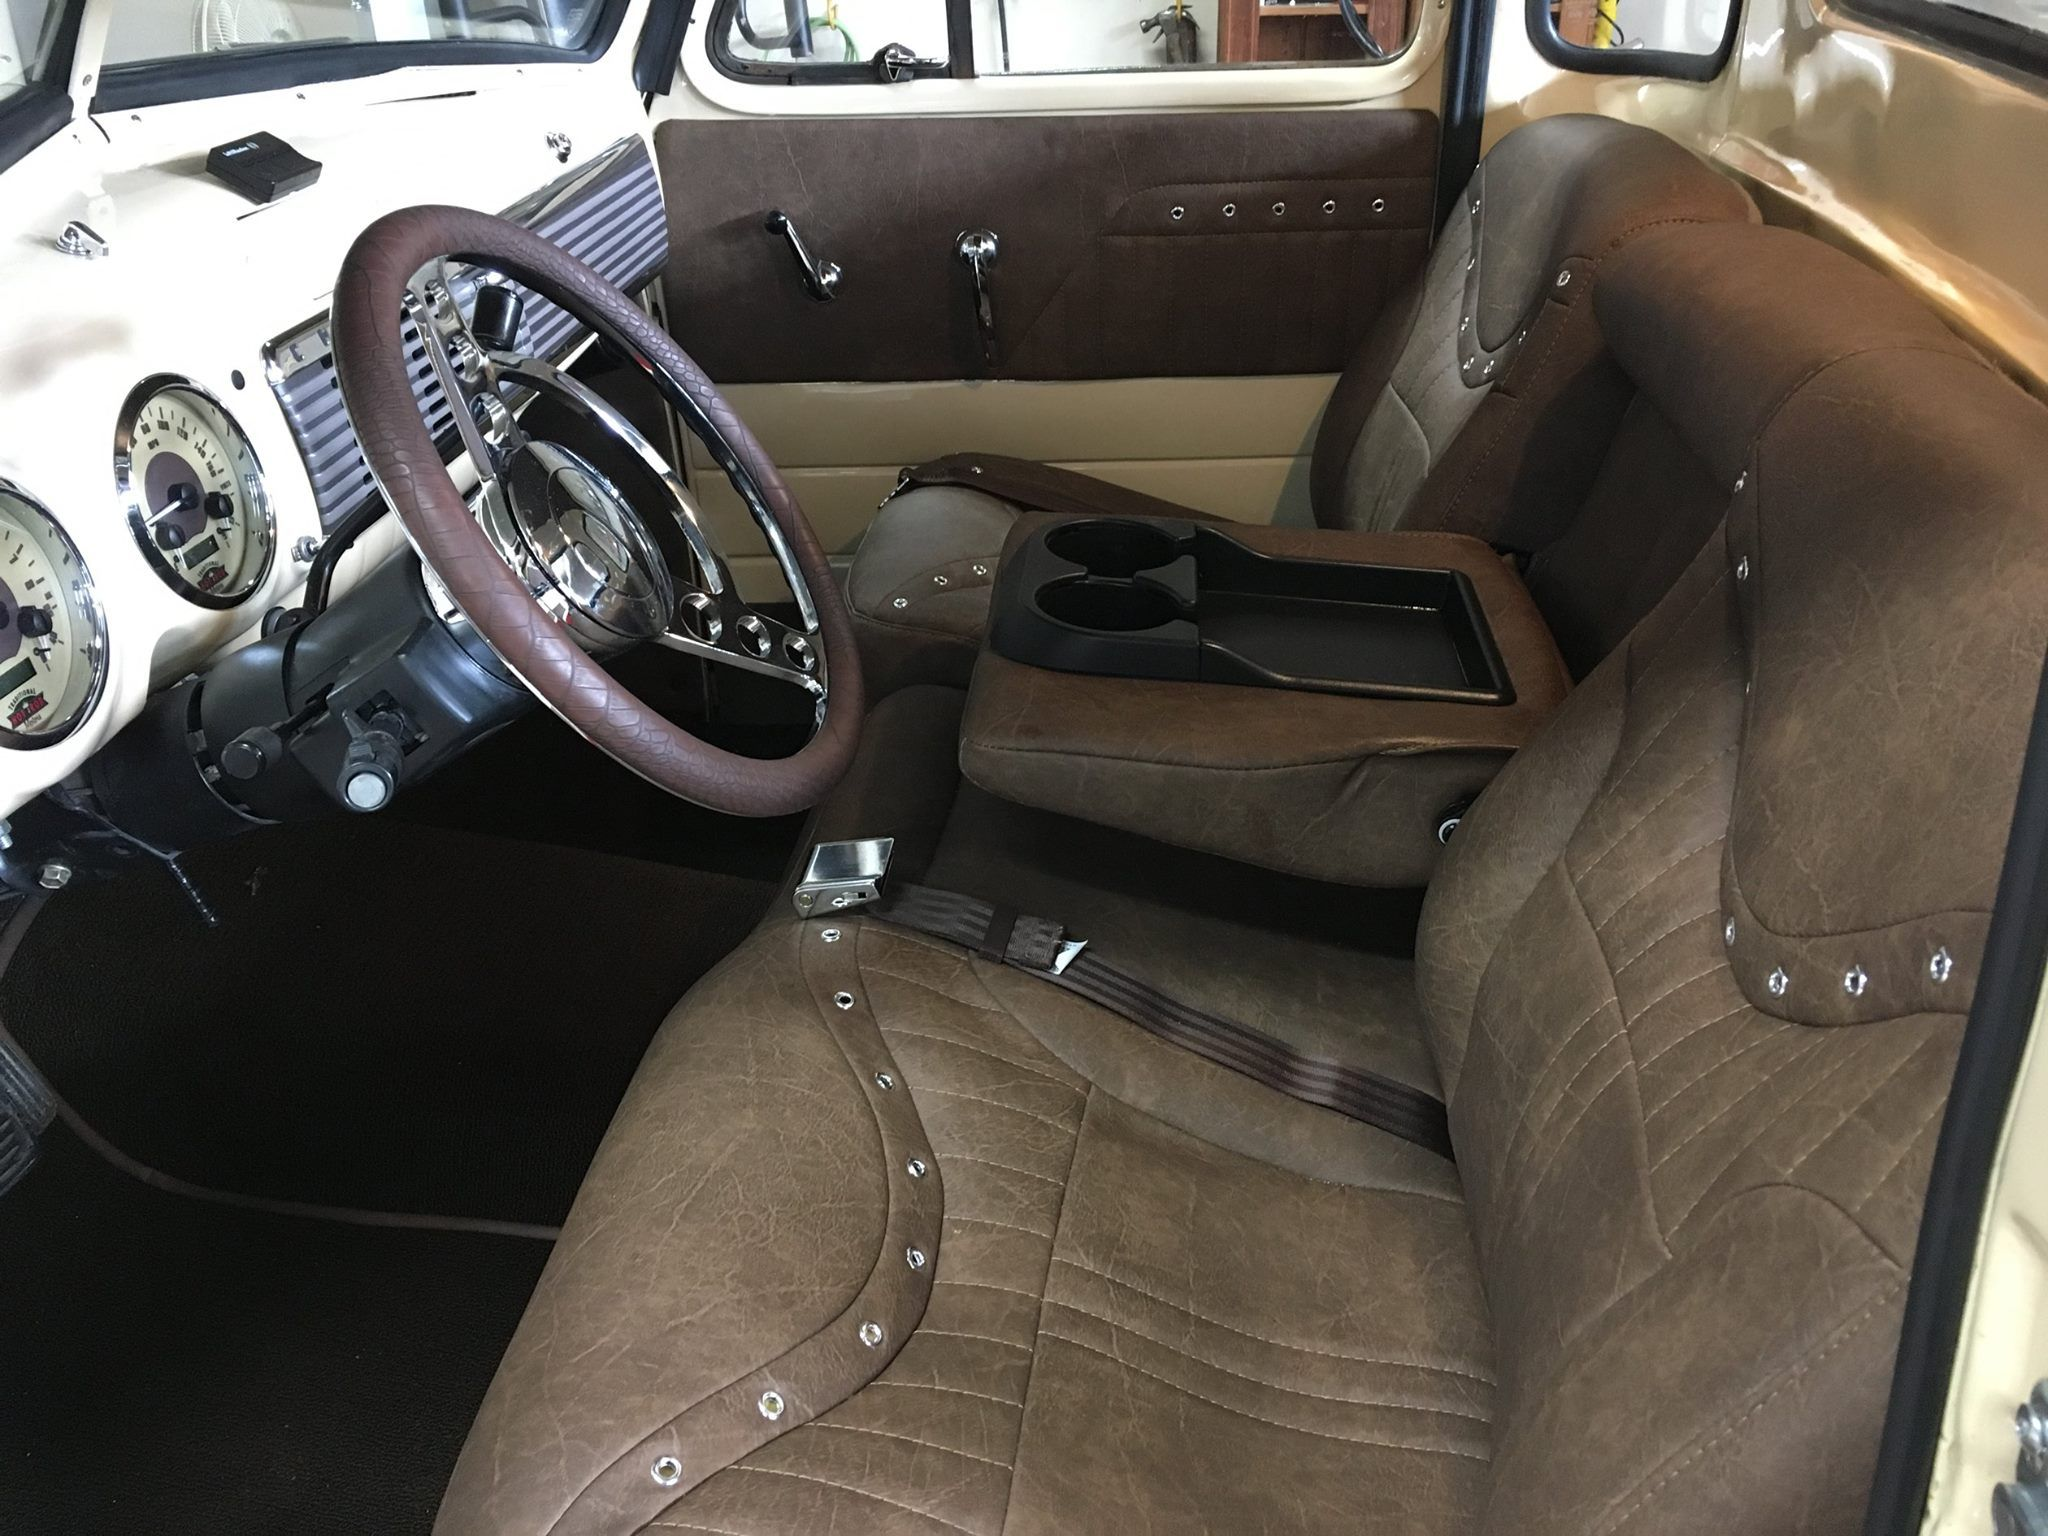 Suburban Bench Seat Part - 32: Custom Upholstery On A Suburban Row Bench Seat Swapped Into An Advance  Design Chevy Pickup.